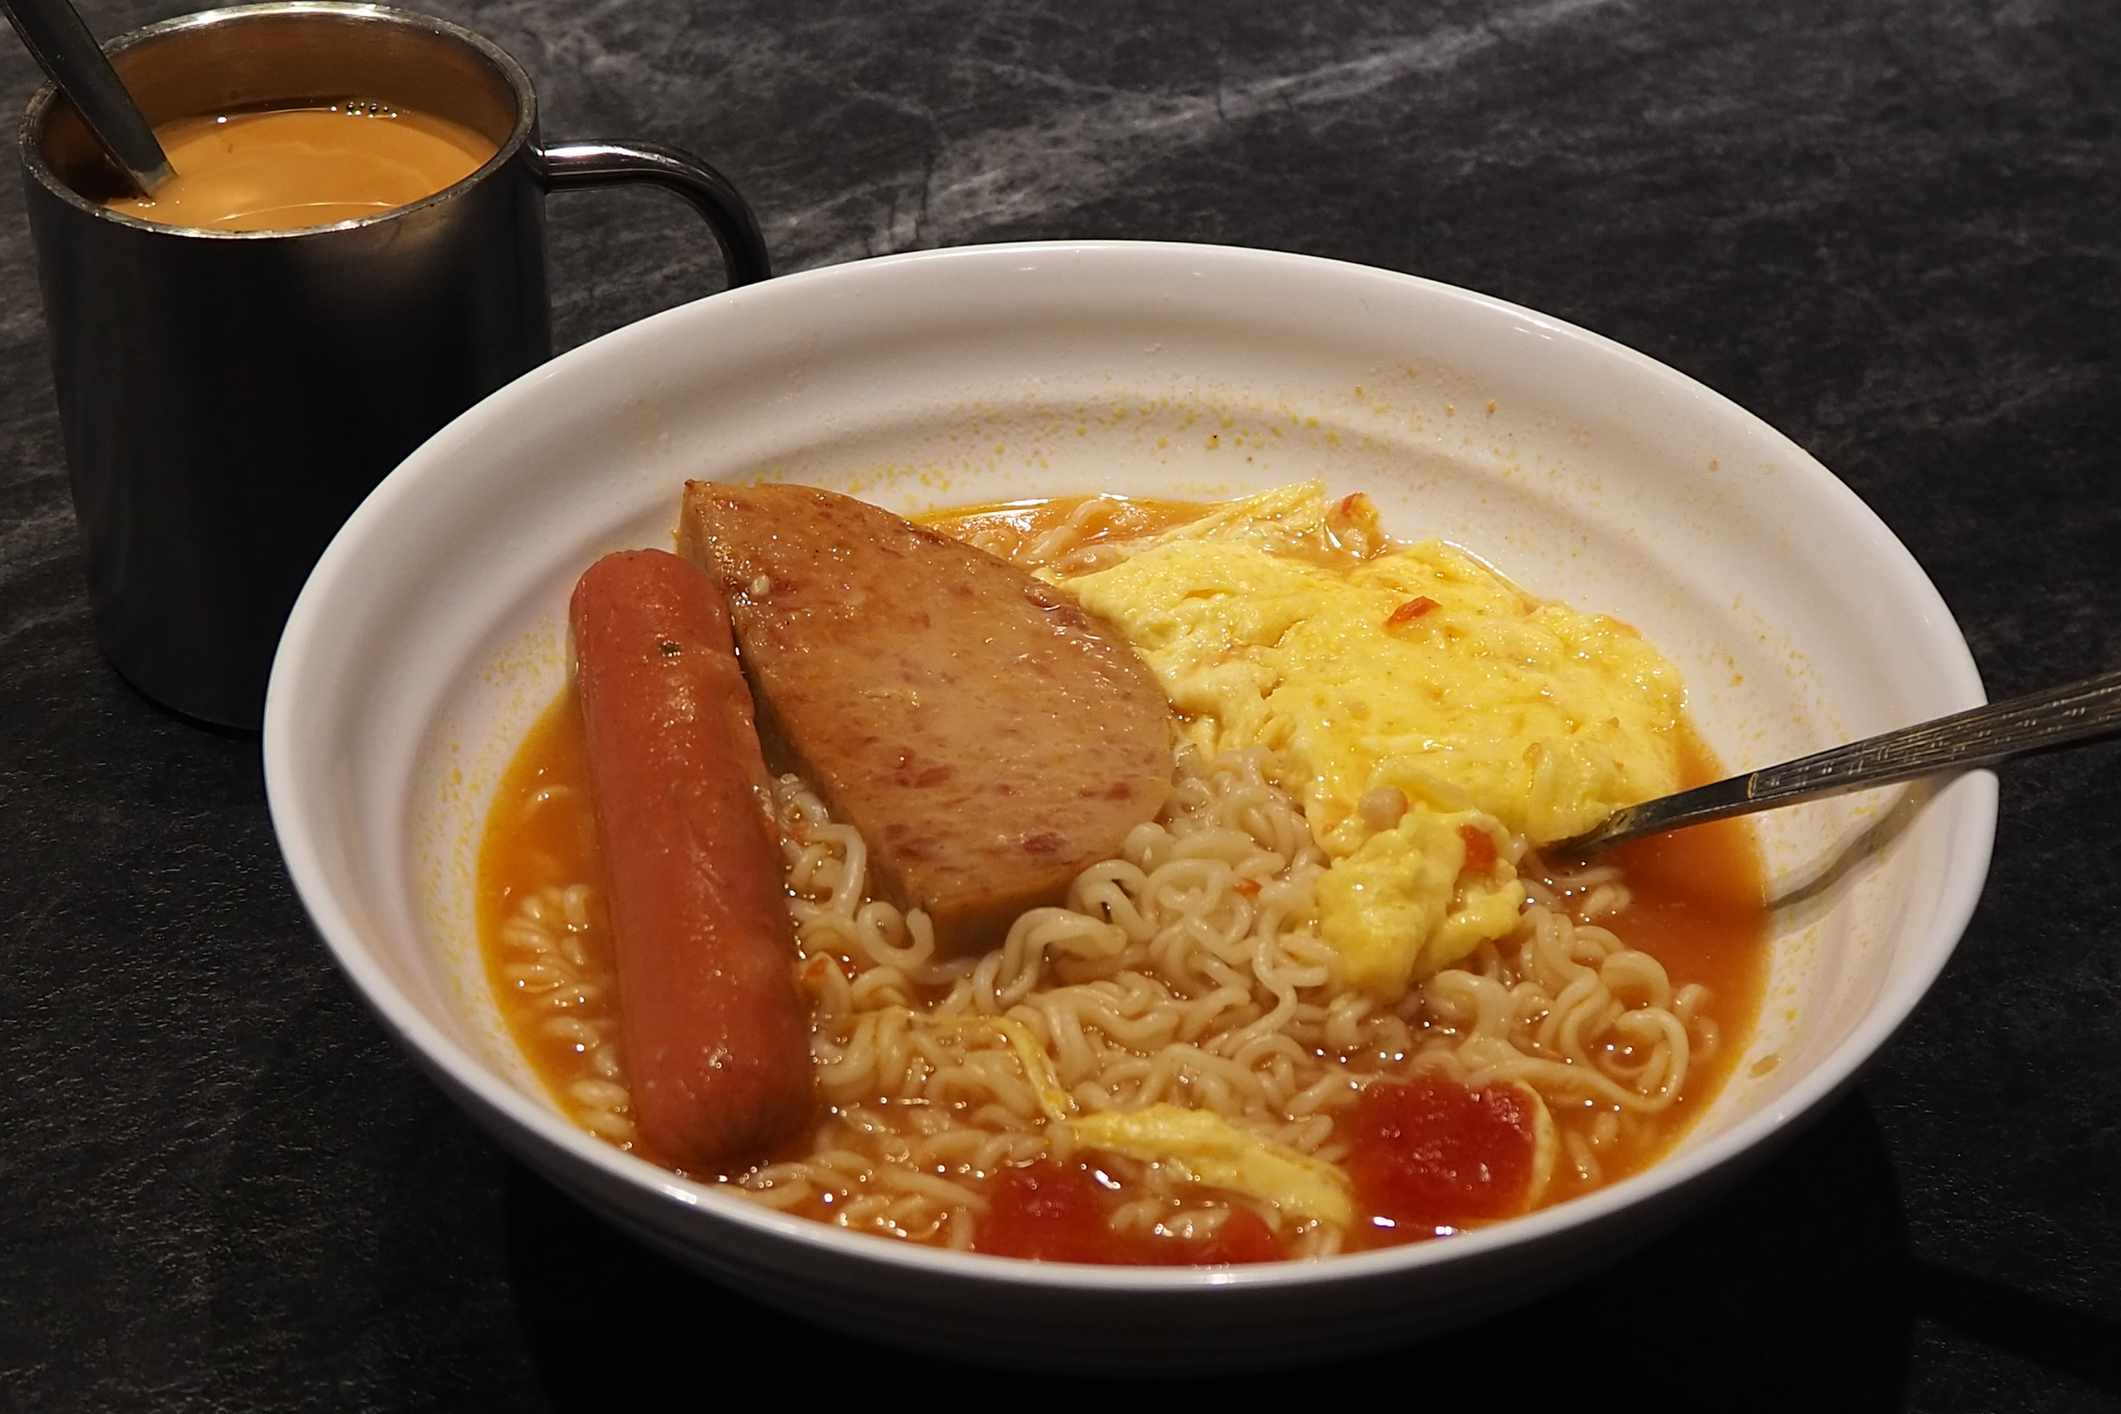 Luncheon Meat on Noodles, Hong Kong